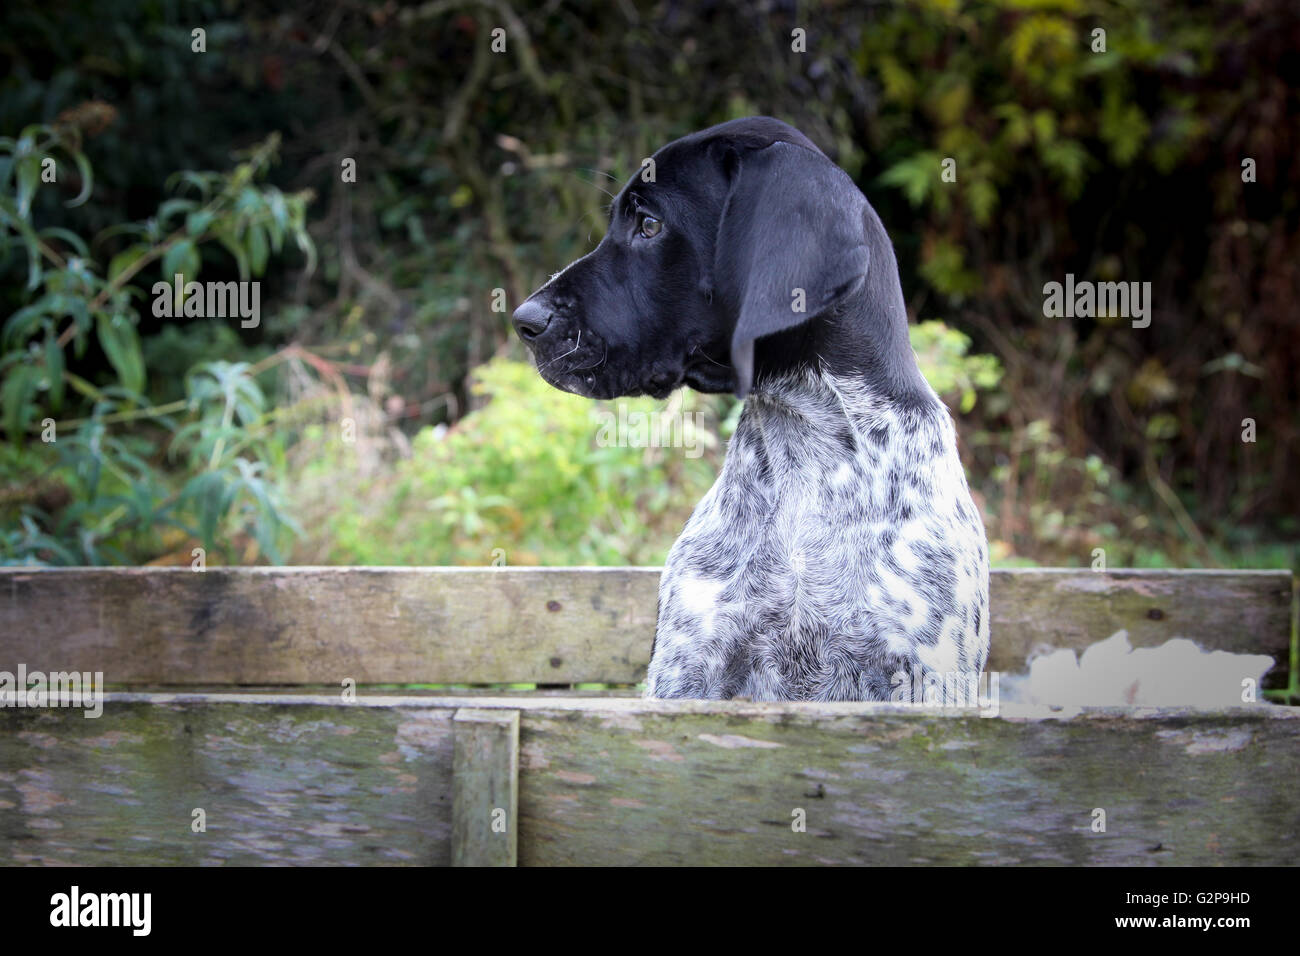 German Shorthaired Pointer Puppy - Stock Image